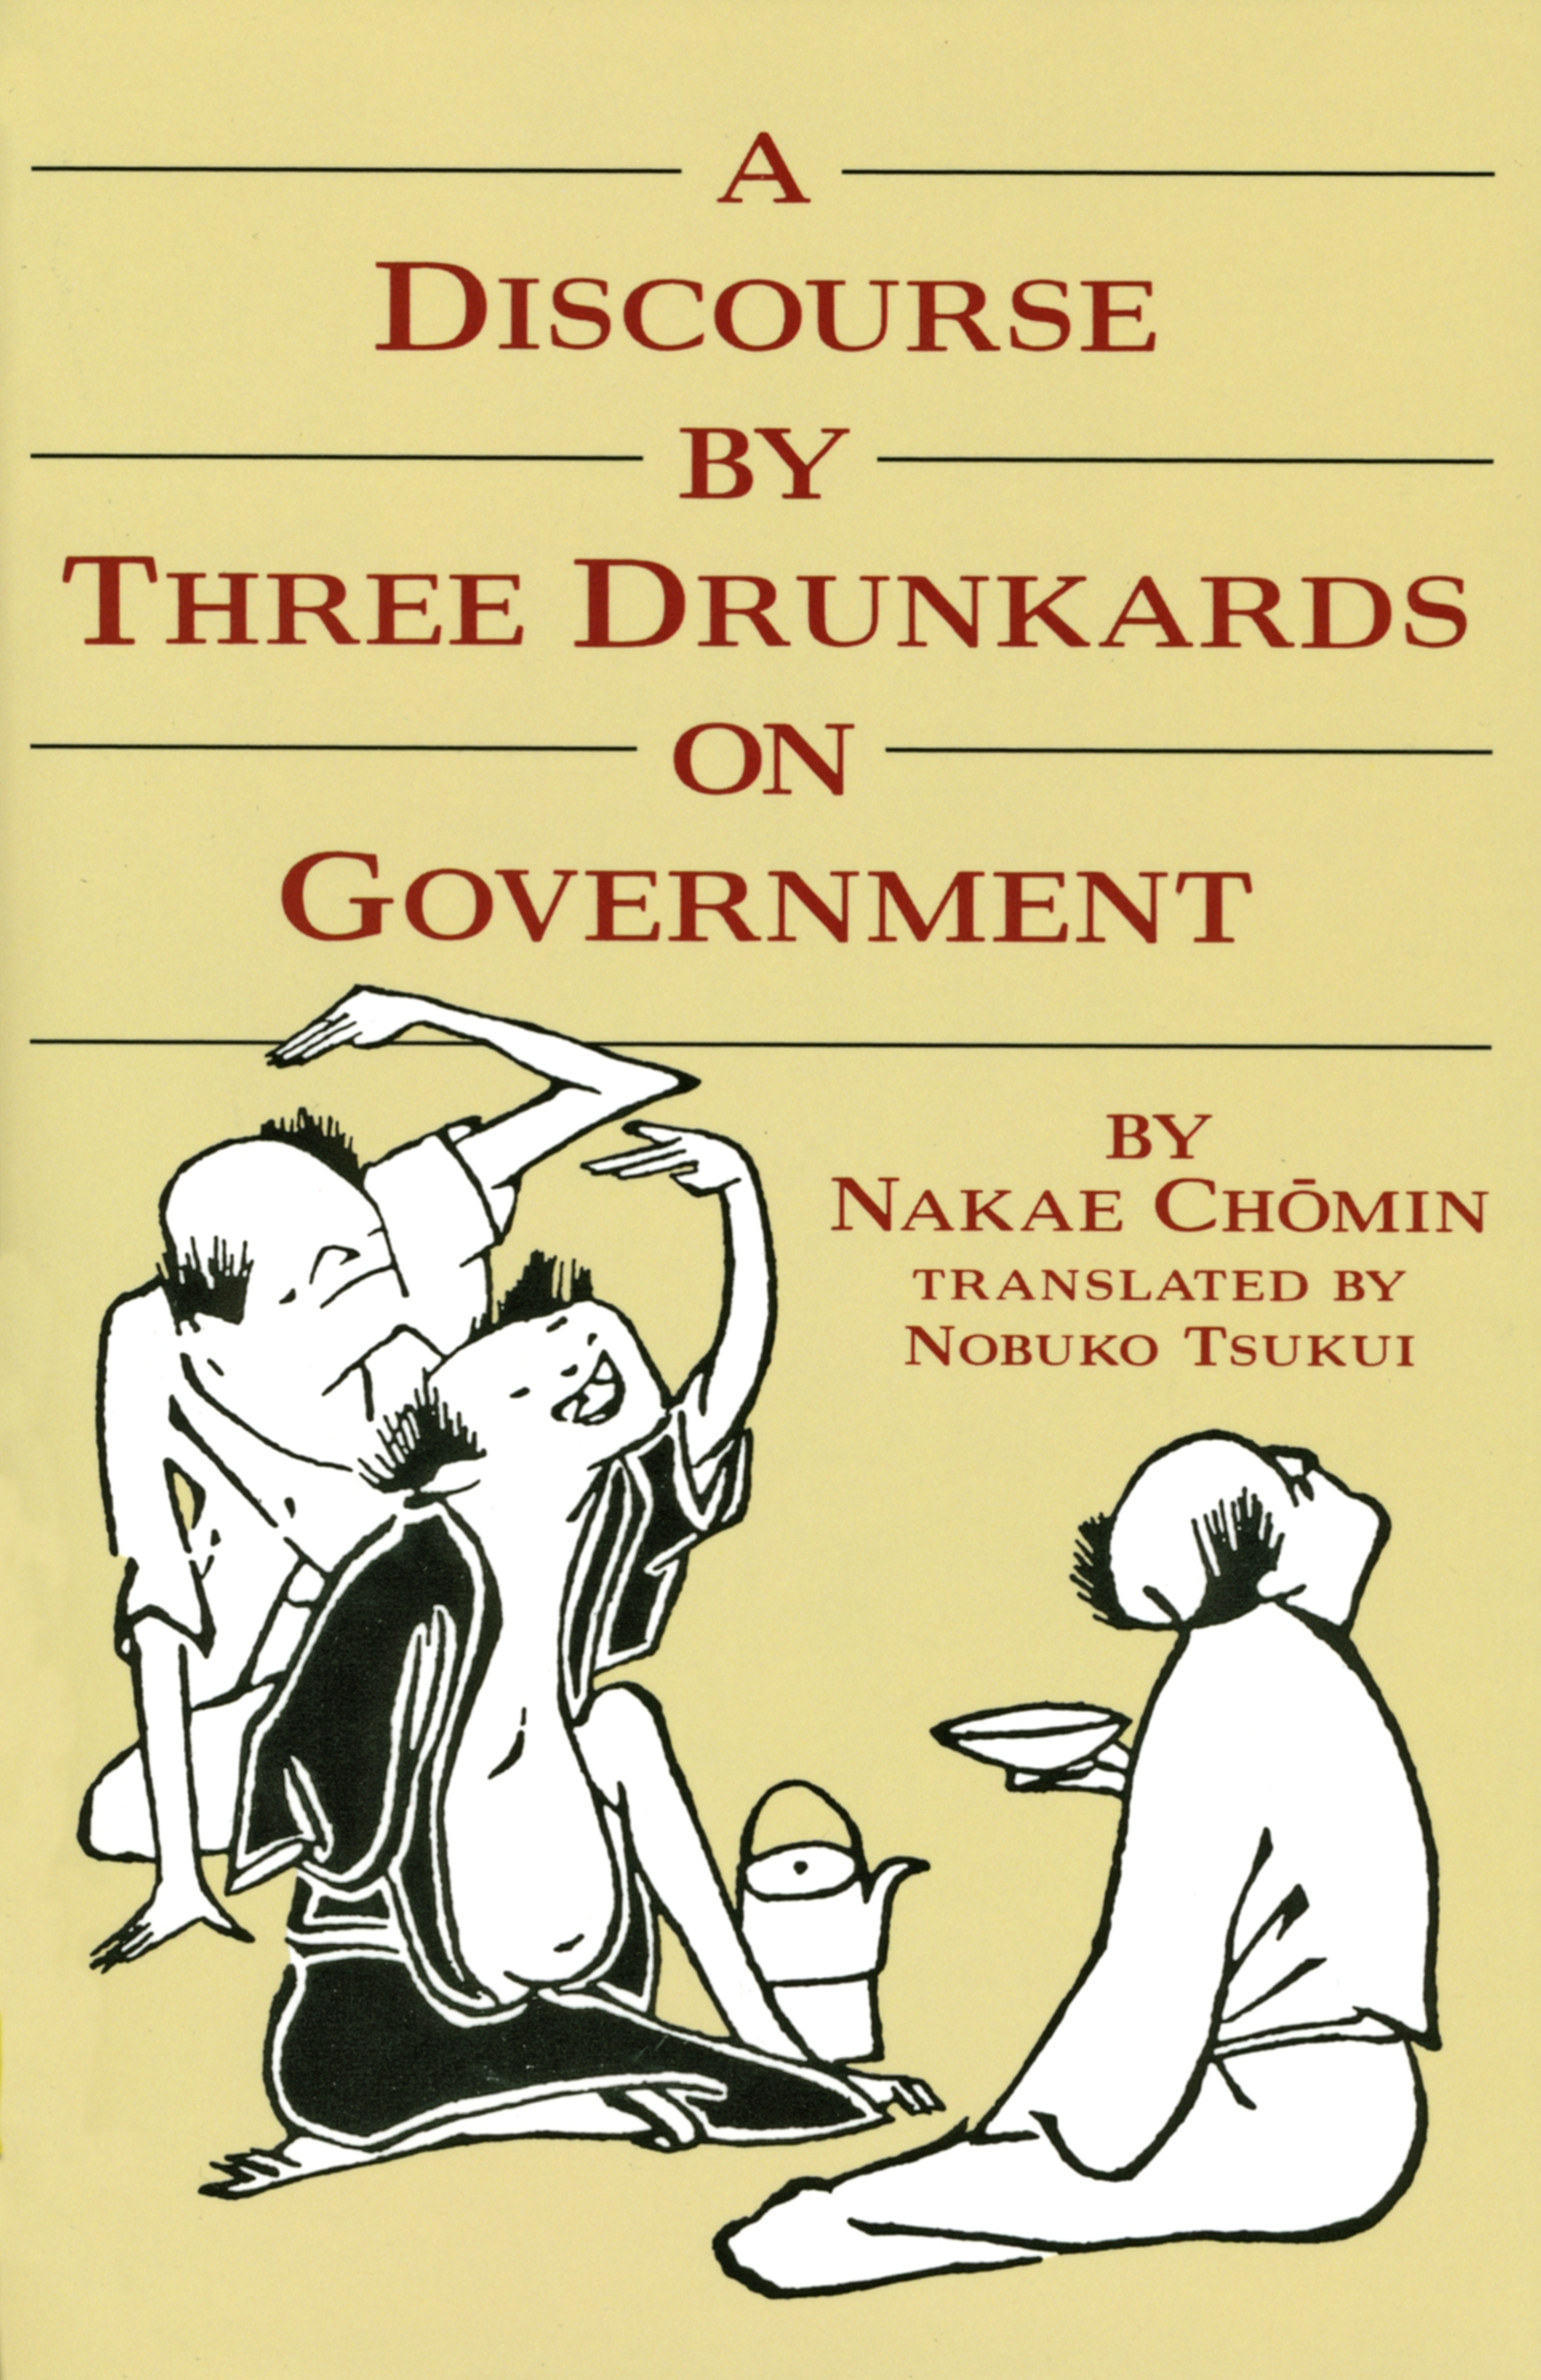 A Discourse by Three Drunkards on Government By: Nakae Chomin